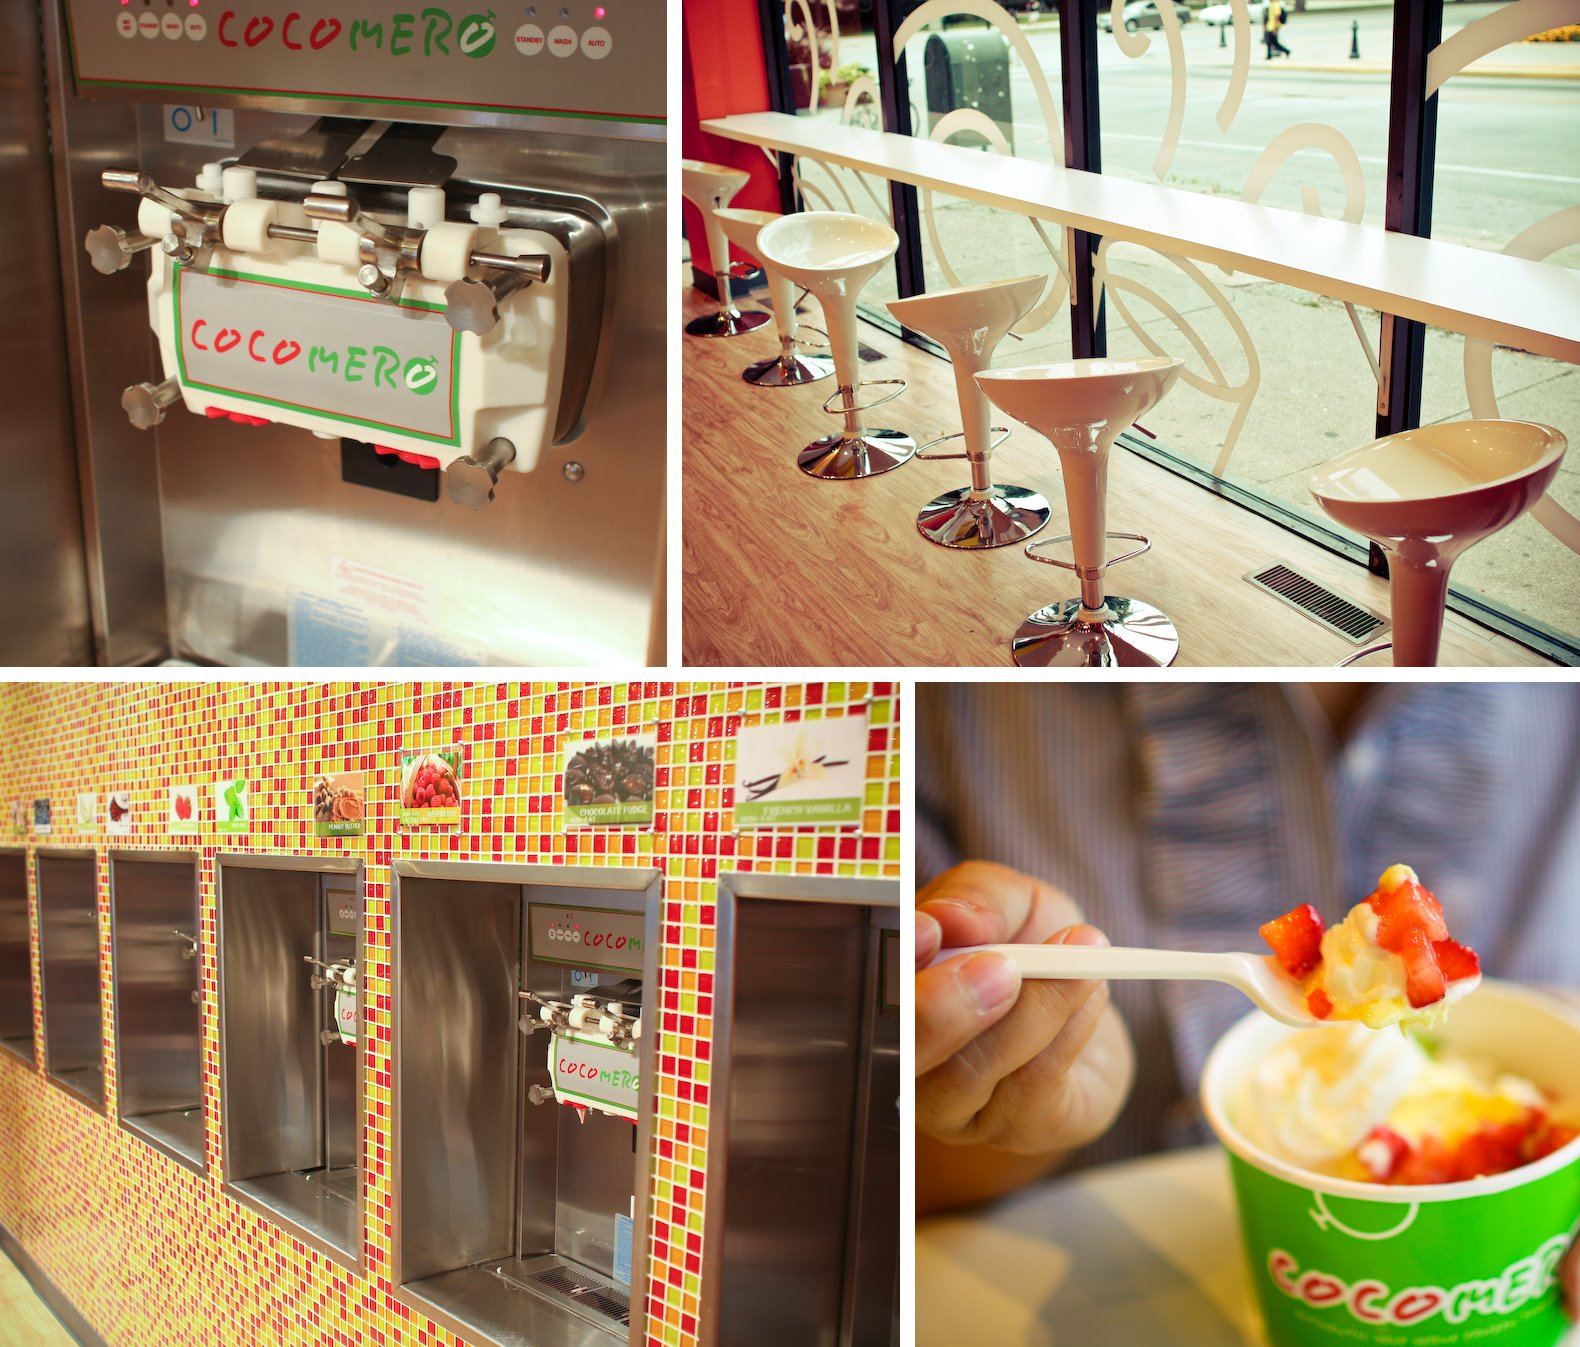 Cocomero, UIUC, Champaign-Urbana, Self-serve Frozen Yogurt